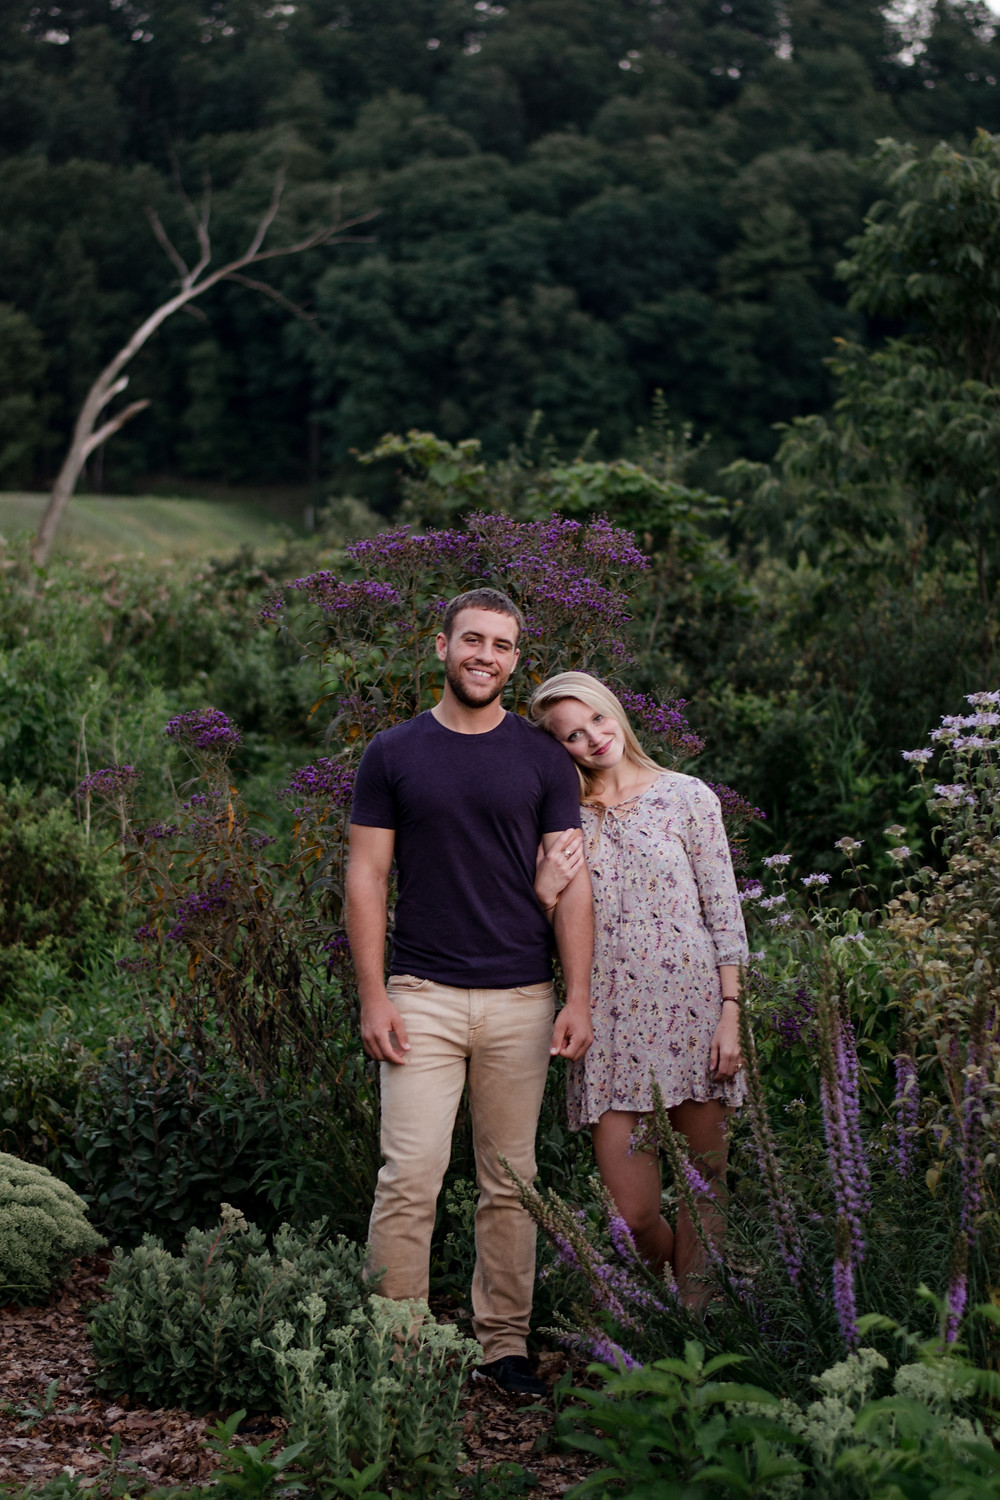 Engagement session, rustic, fun, wedding photographer, flowers